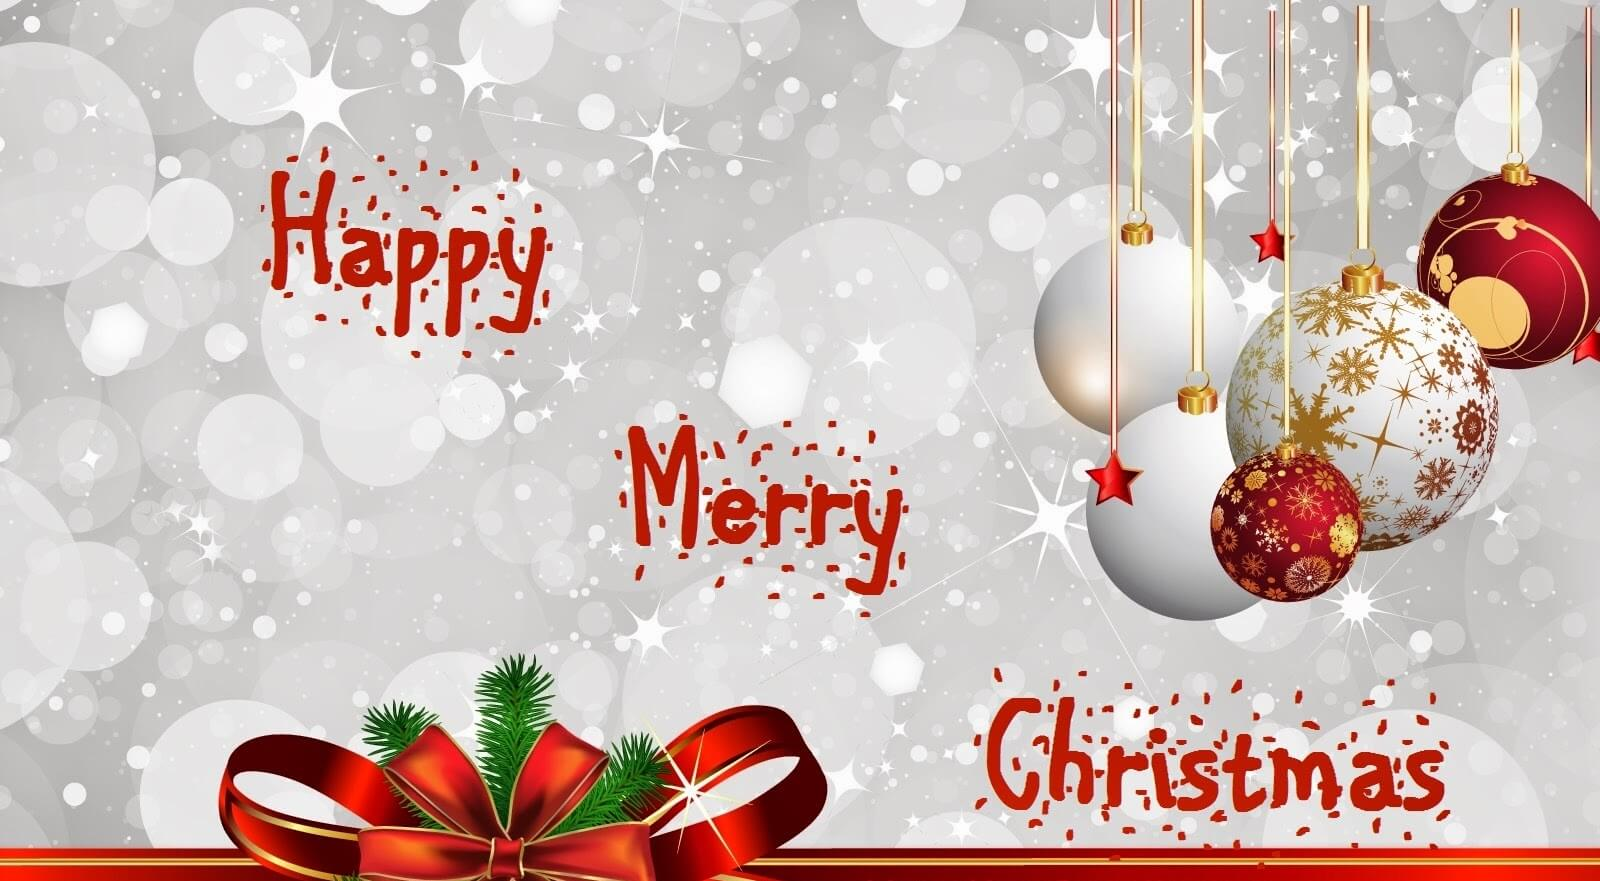 Merry Christmas SMS Messages 2018